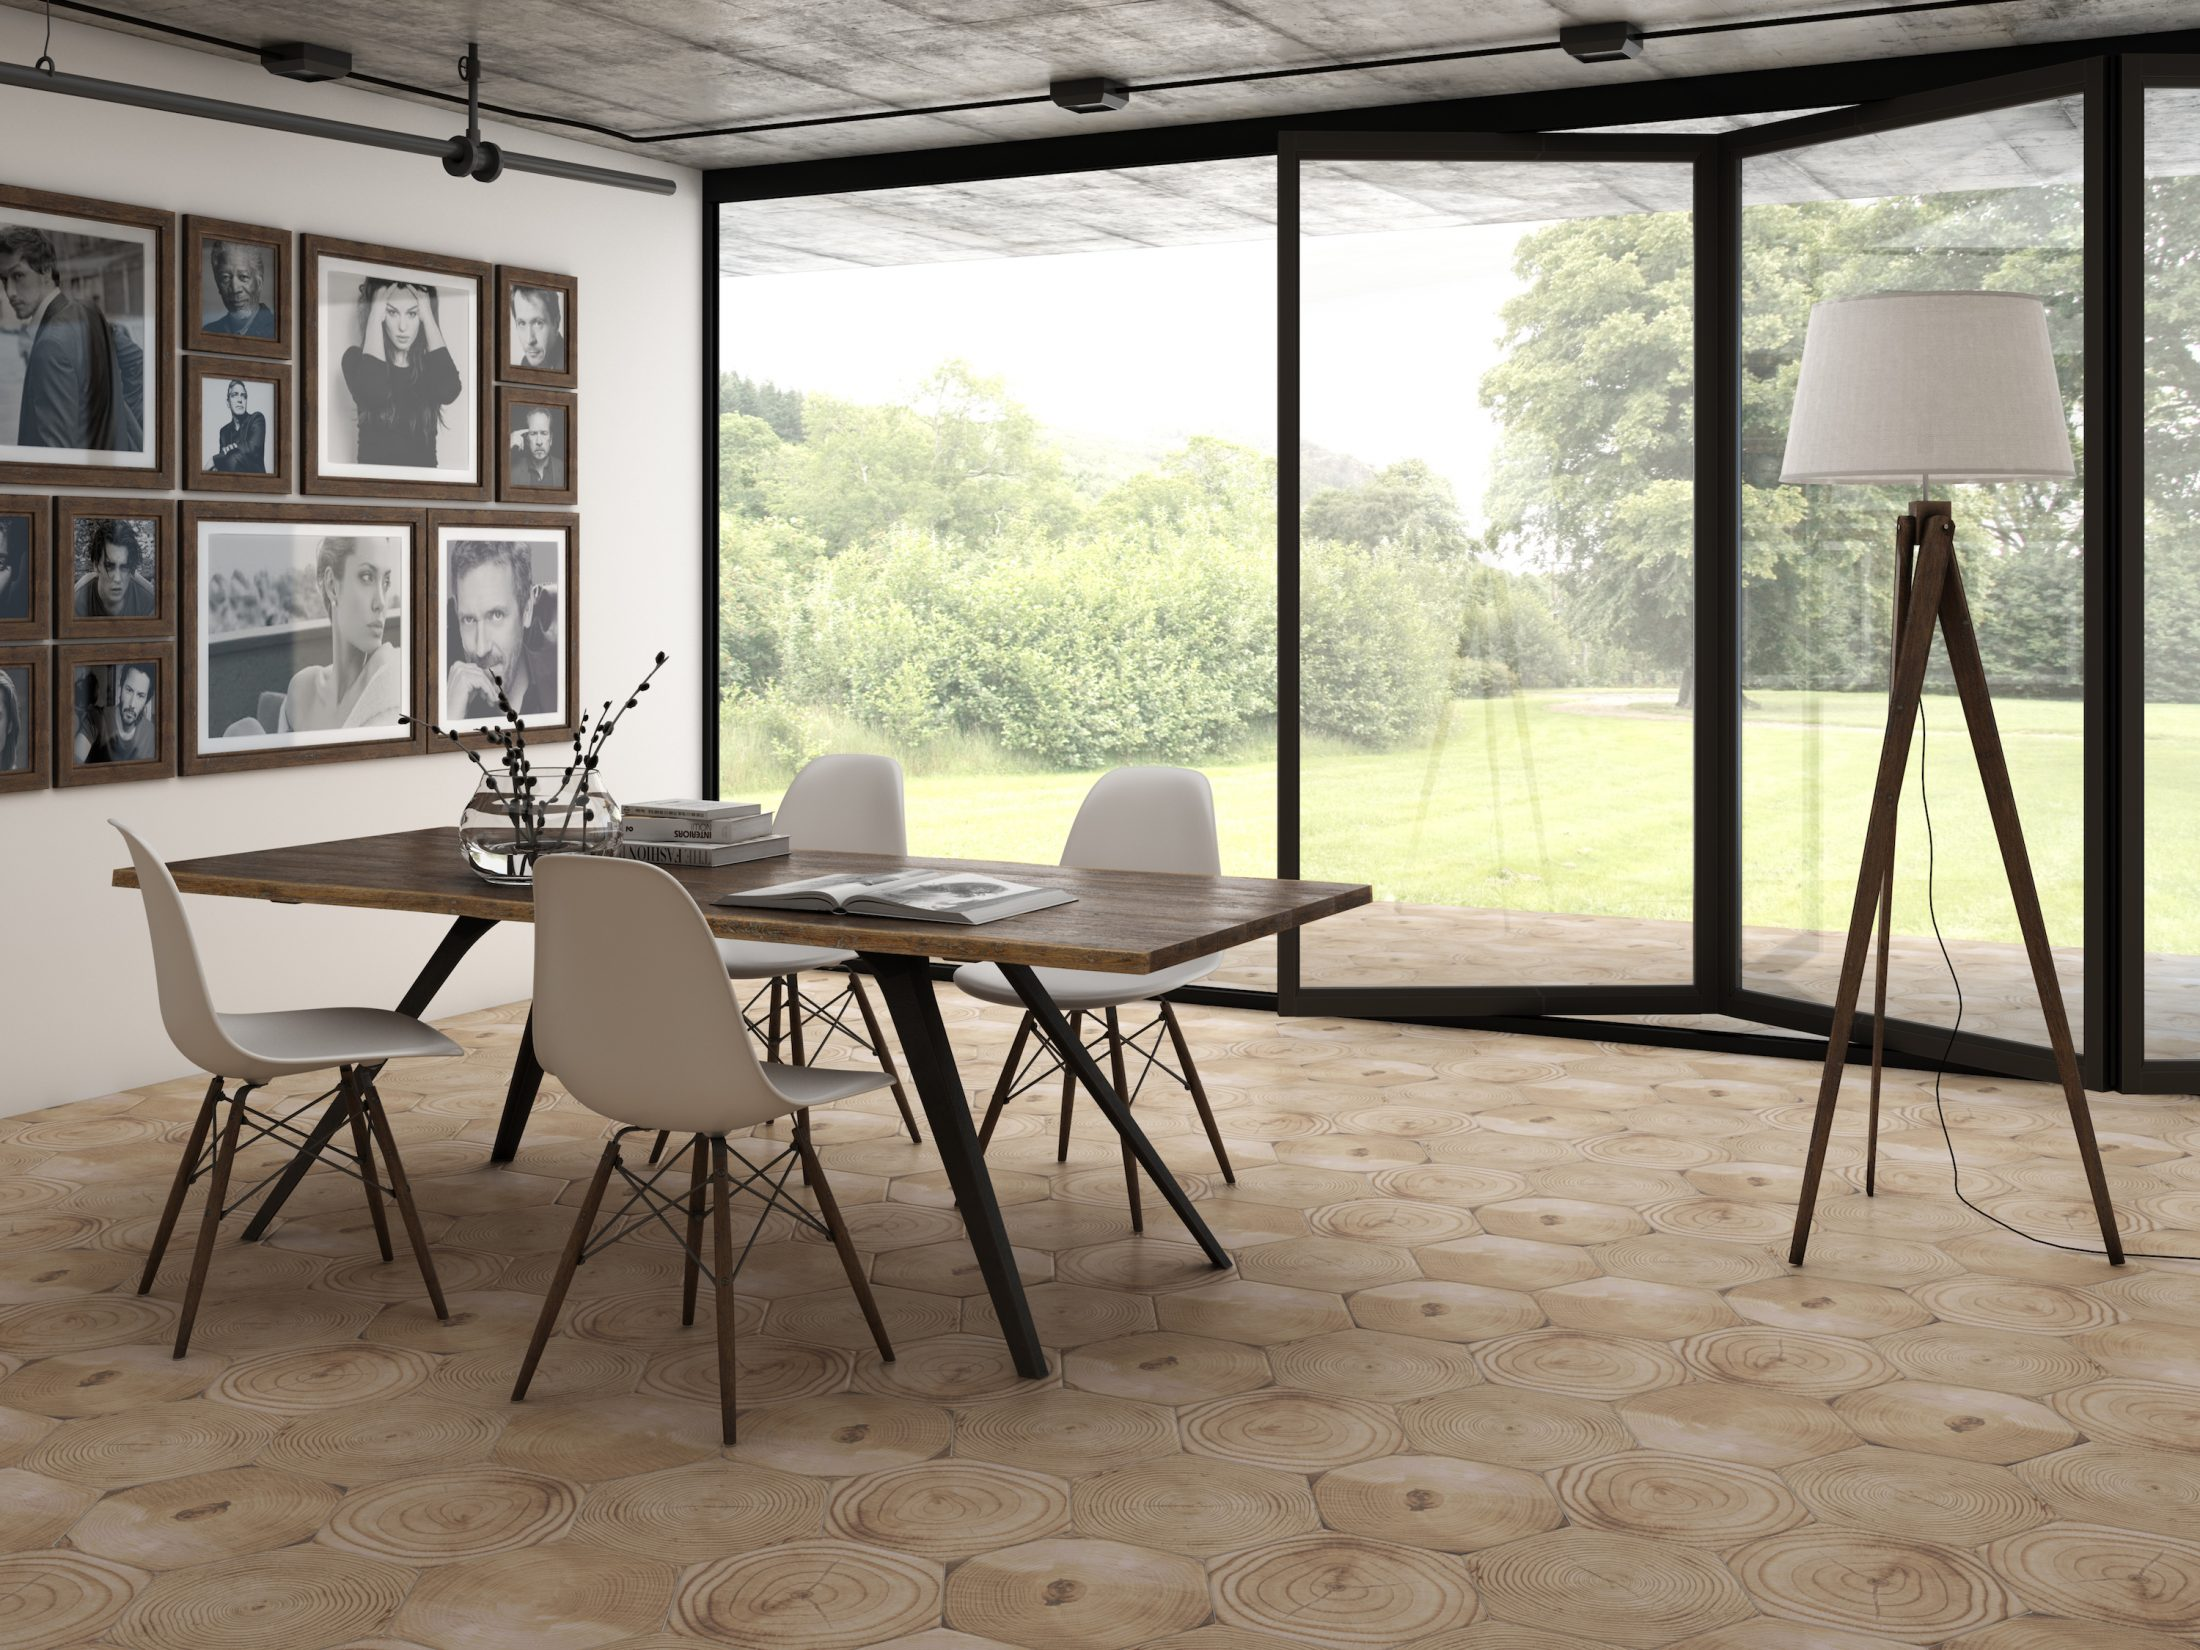 Ceranosa - Dacha Series. Porcelain hexagonal floor tiles (32x37cm).